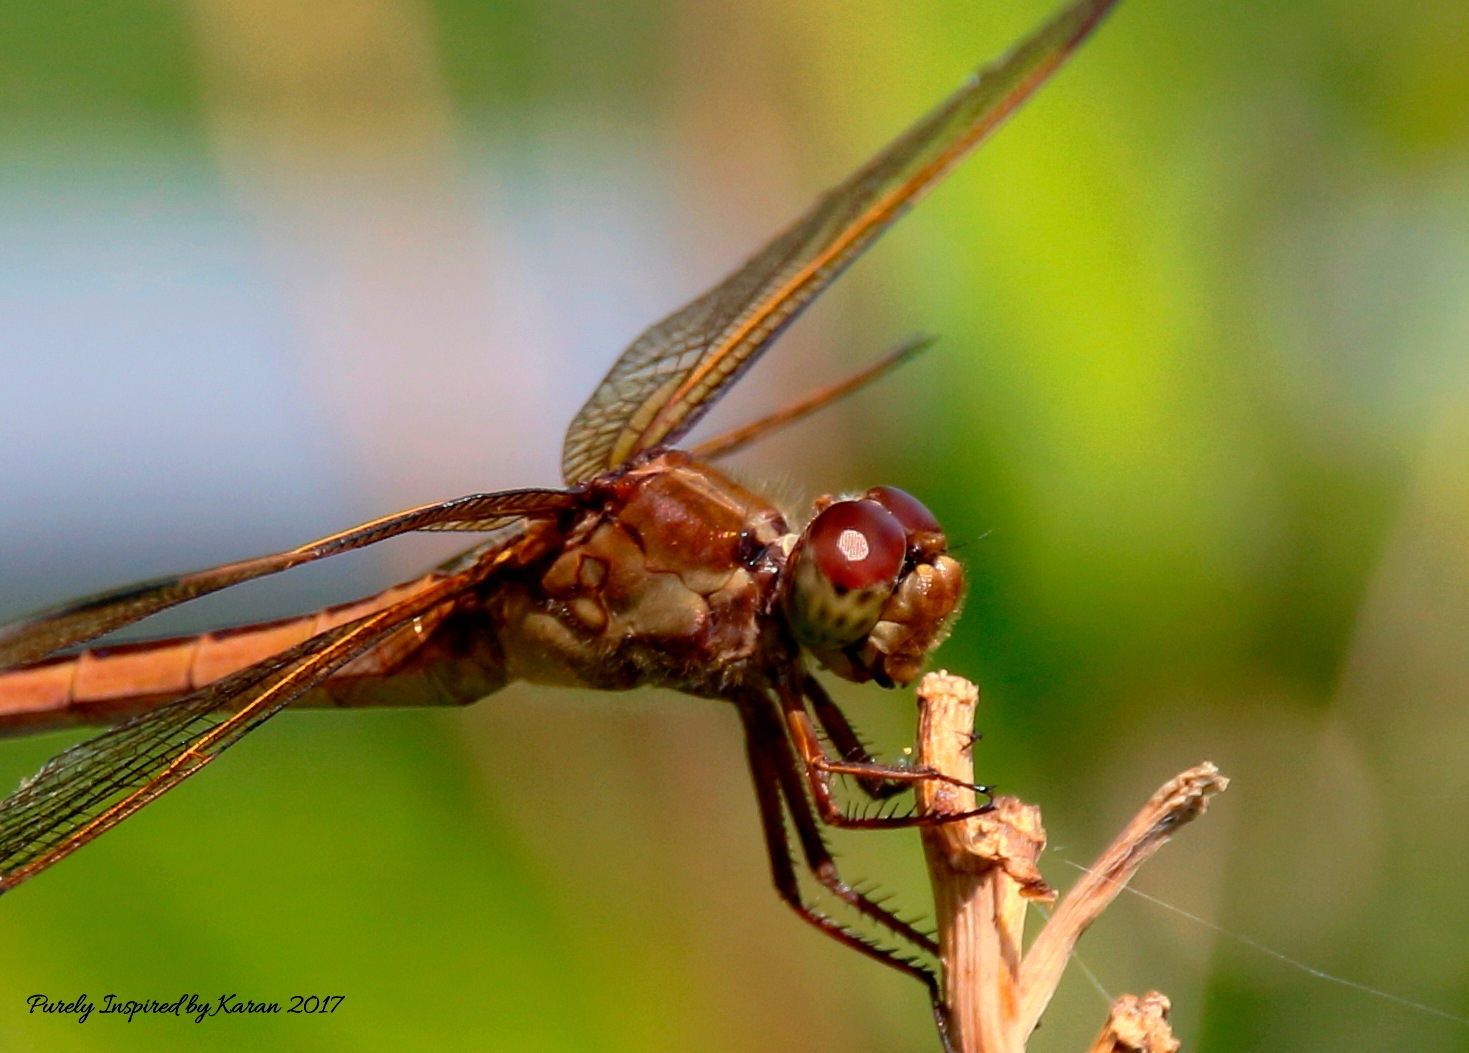 Female Needham's Skimmers Dragonfly by Purely Inspired by Karan